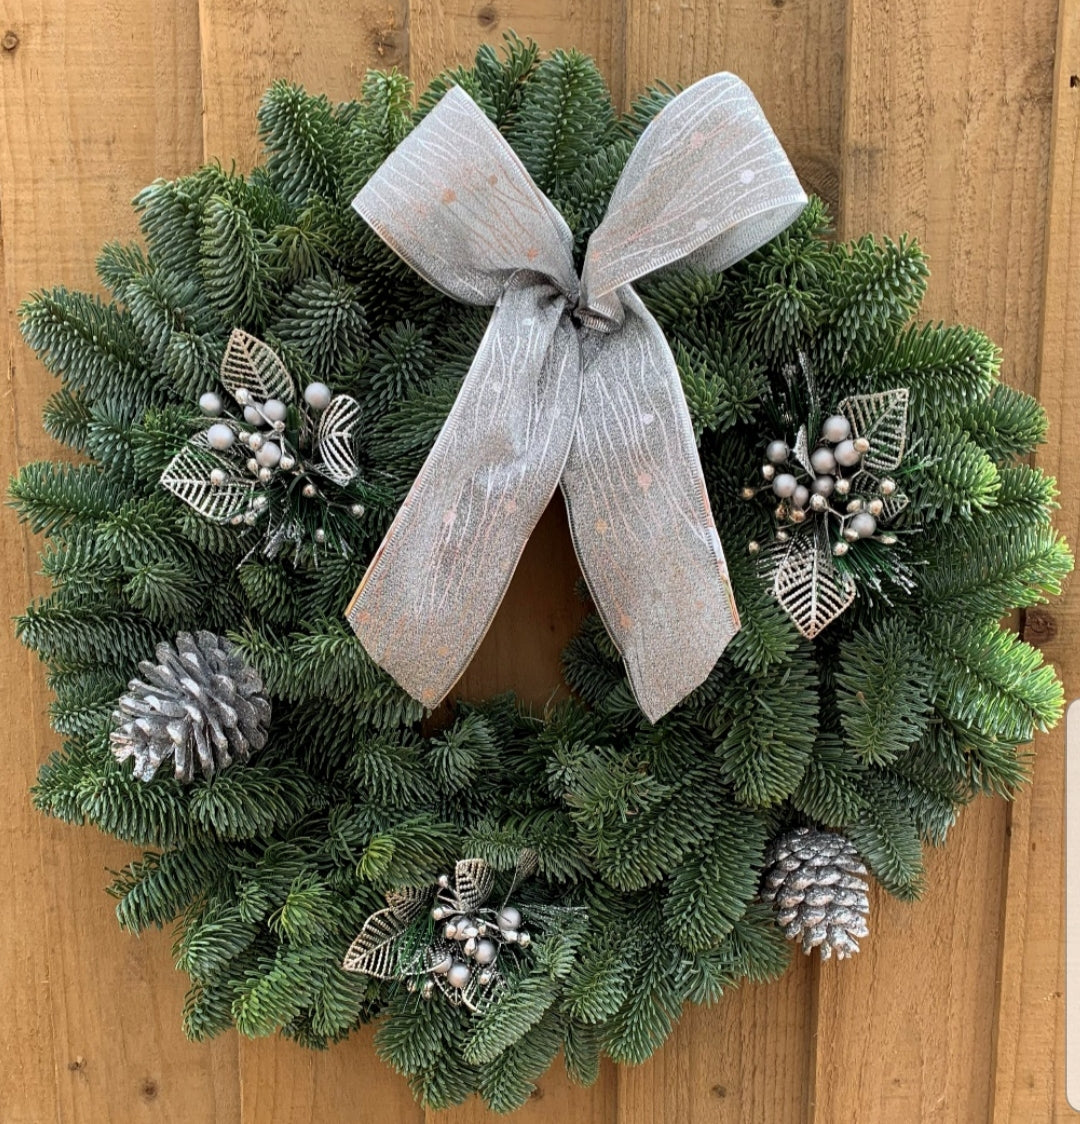 "Wreath - Spruce with Silver Bow and Decorations - 16""   (40 cm)"